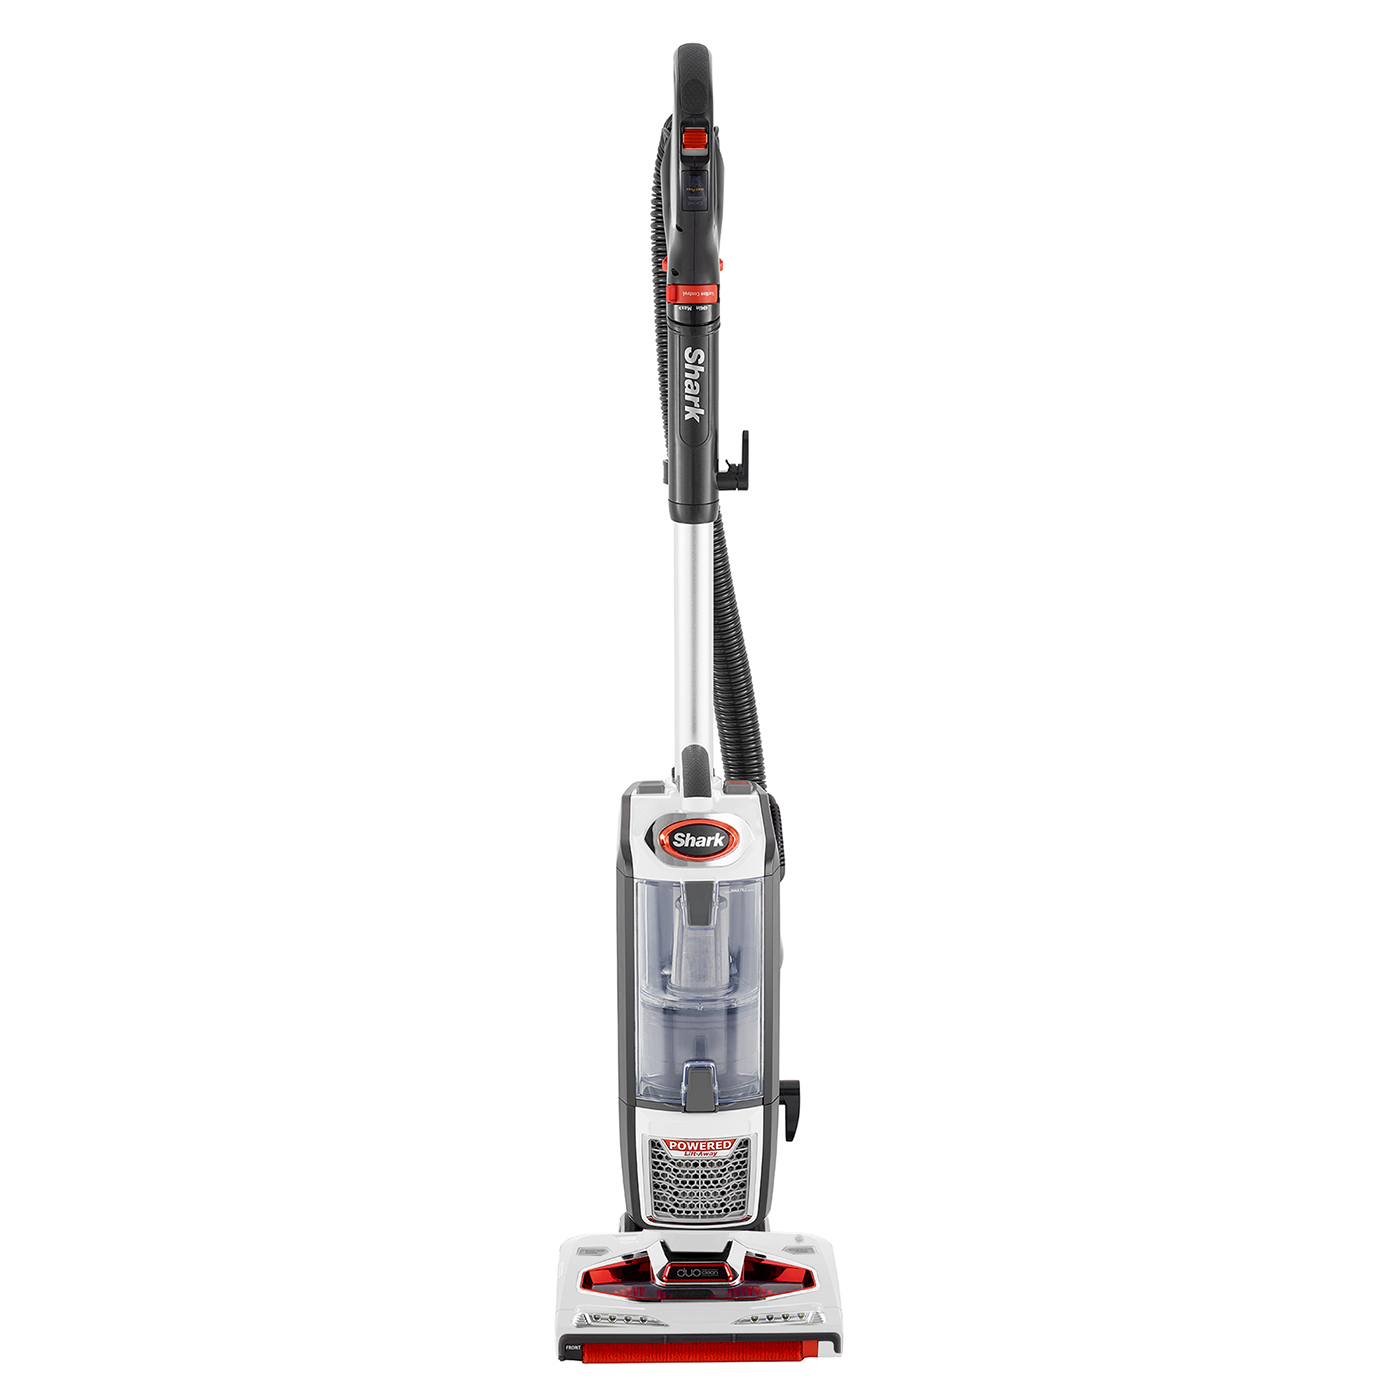 shark rotator powered liftaway pet upright vacuum cleaner nv680ukt shark innovative vacuum cleaners mops u0026 home care products